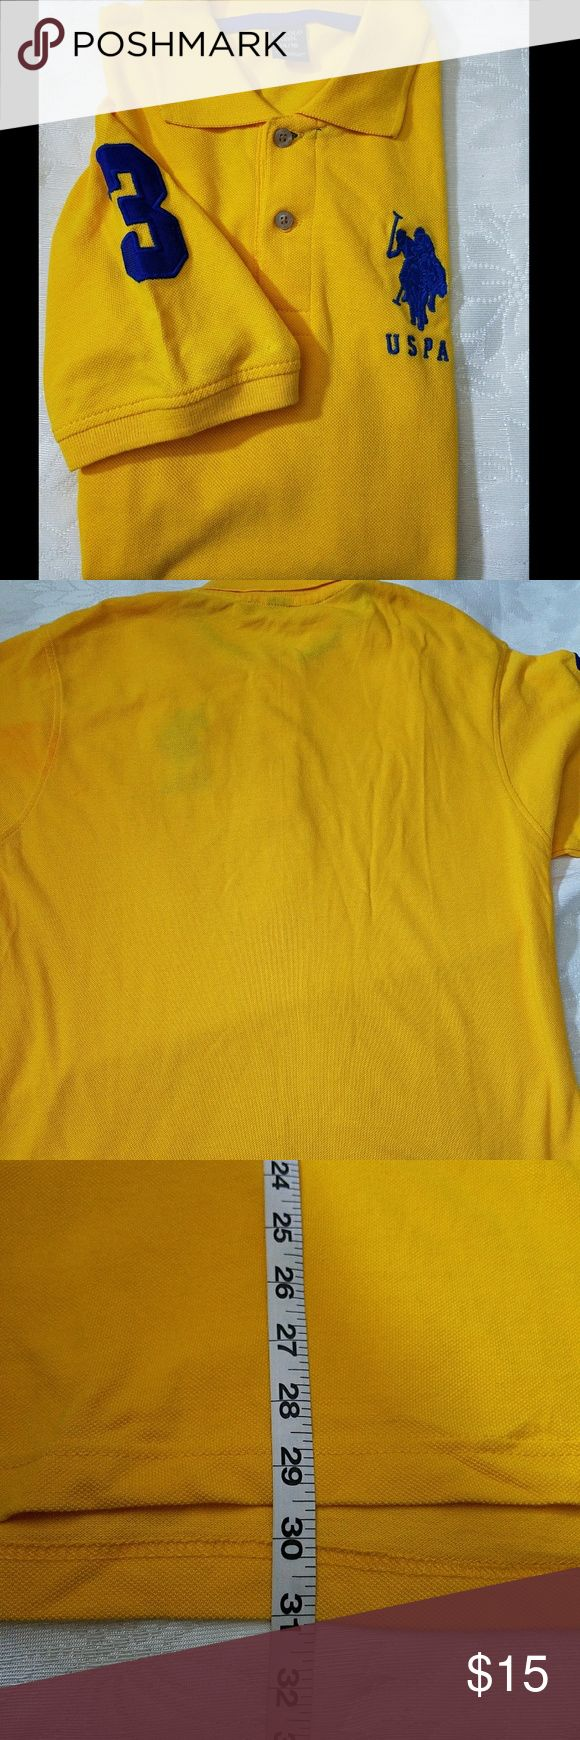 U.S. Polo Association Yellow Polo Size Mens 14/16 This gently worn golden yellow polo is in good condition except for a small stain at the bottom which is very faint. Last photo shows how small the stain is.   Made of 100% cotton.   Please see photos for measurements and details.   Add to a bundle to save U.S. Polo Assn. Shirts Polos